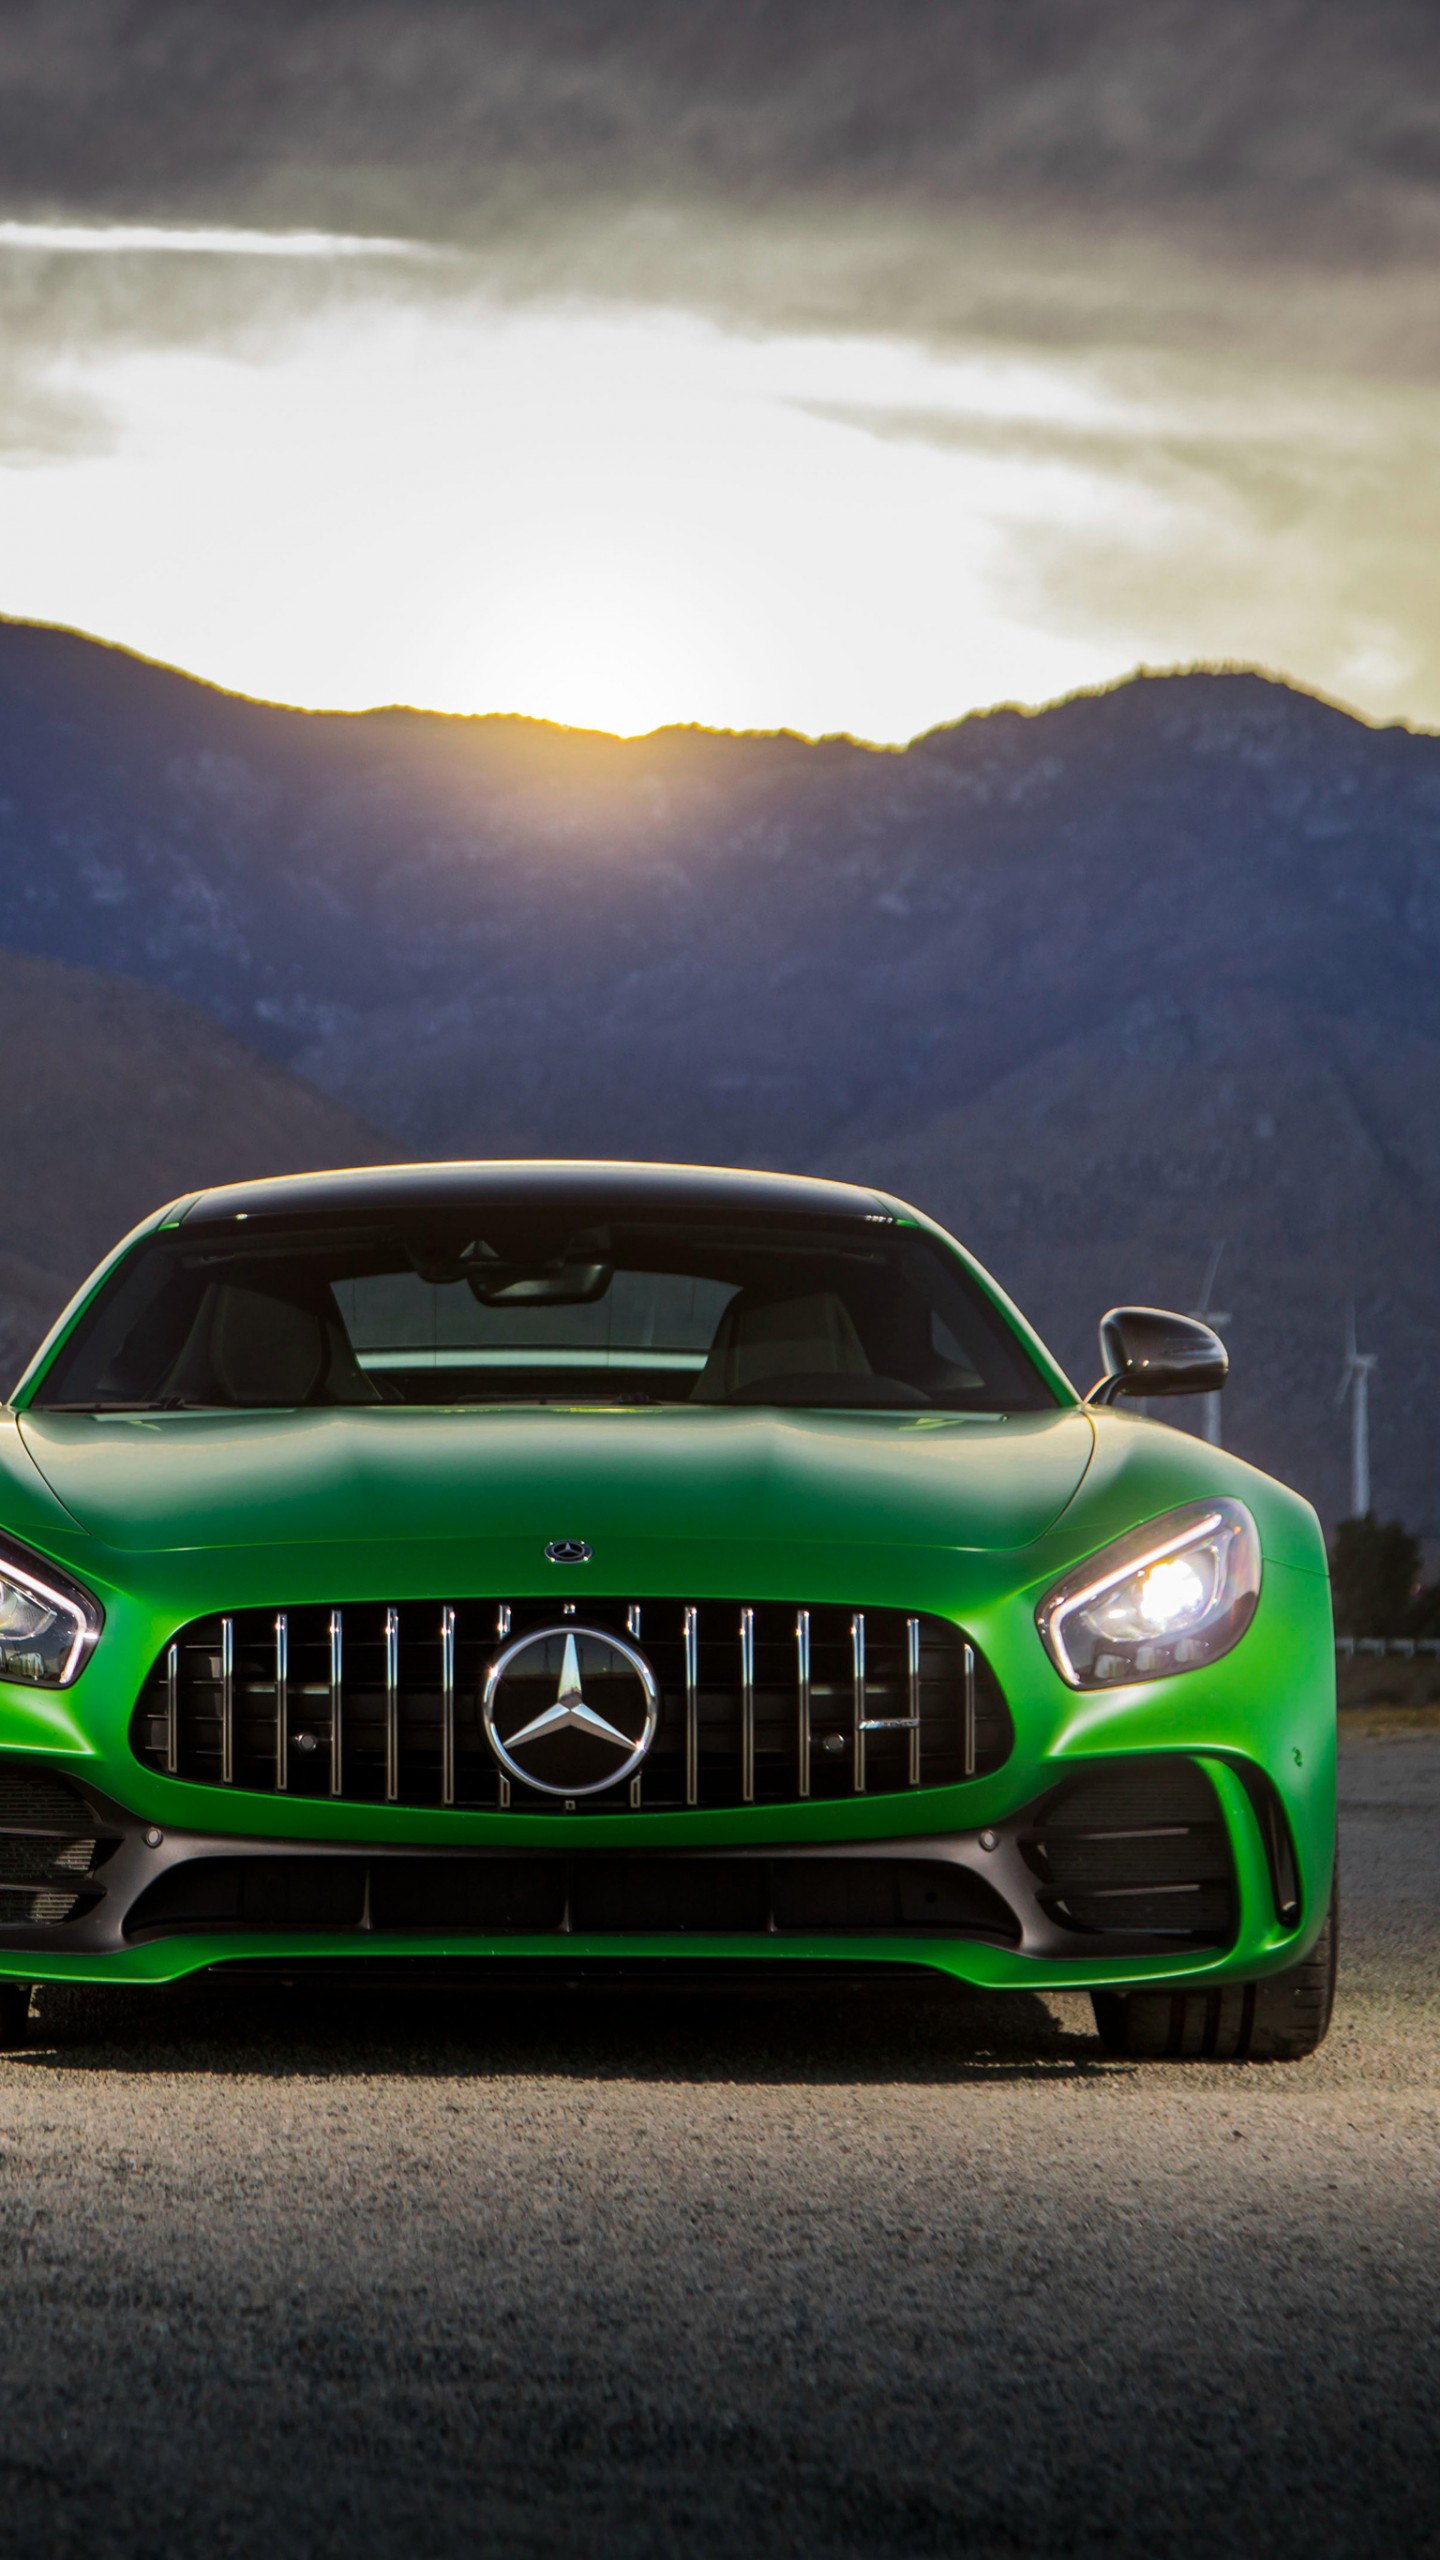 Space Wallpaper Hd Wallpaper Mercedes Amg Gtr 2018 Cars 4k Cars Amp Bikes 17088